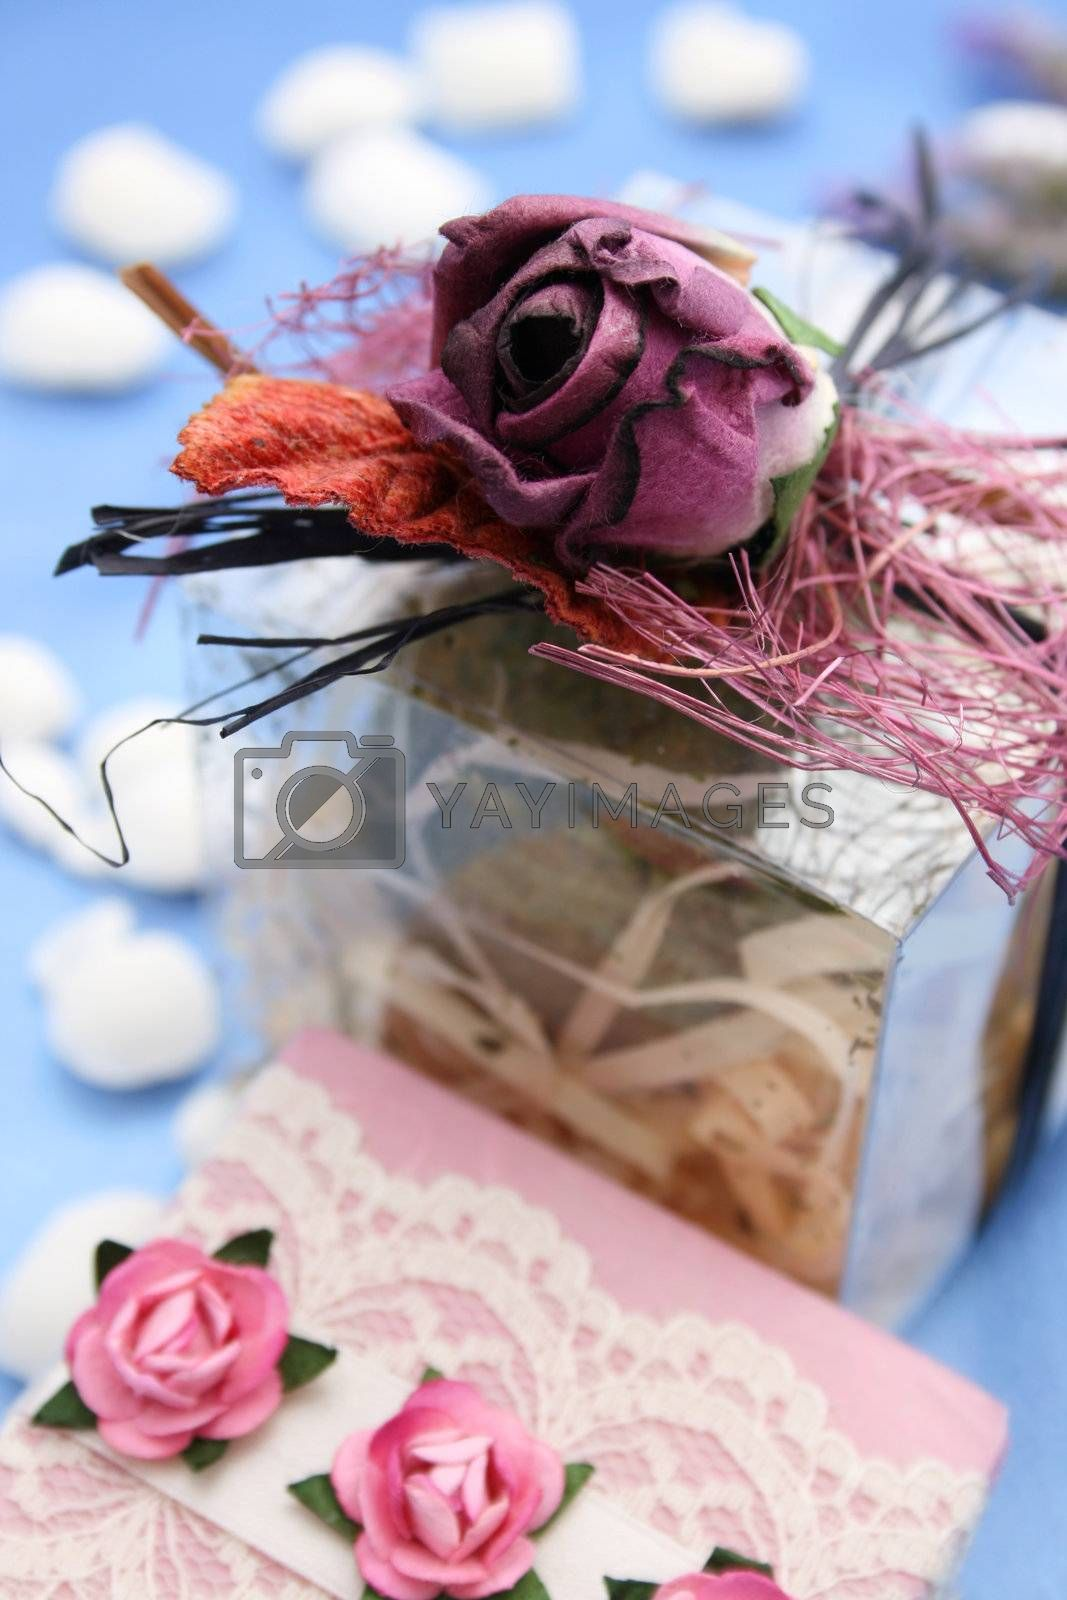 Wrapped soap gift and decorated pvc box with fizz ball inside